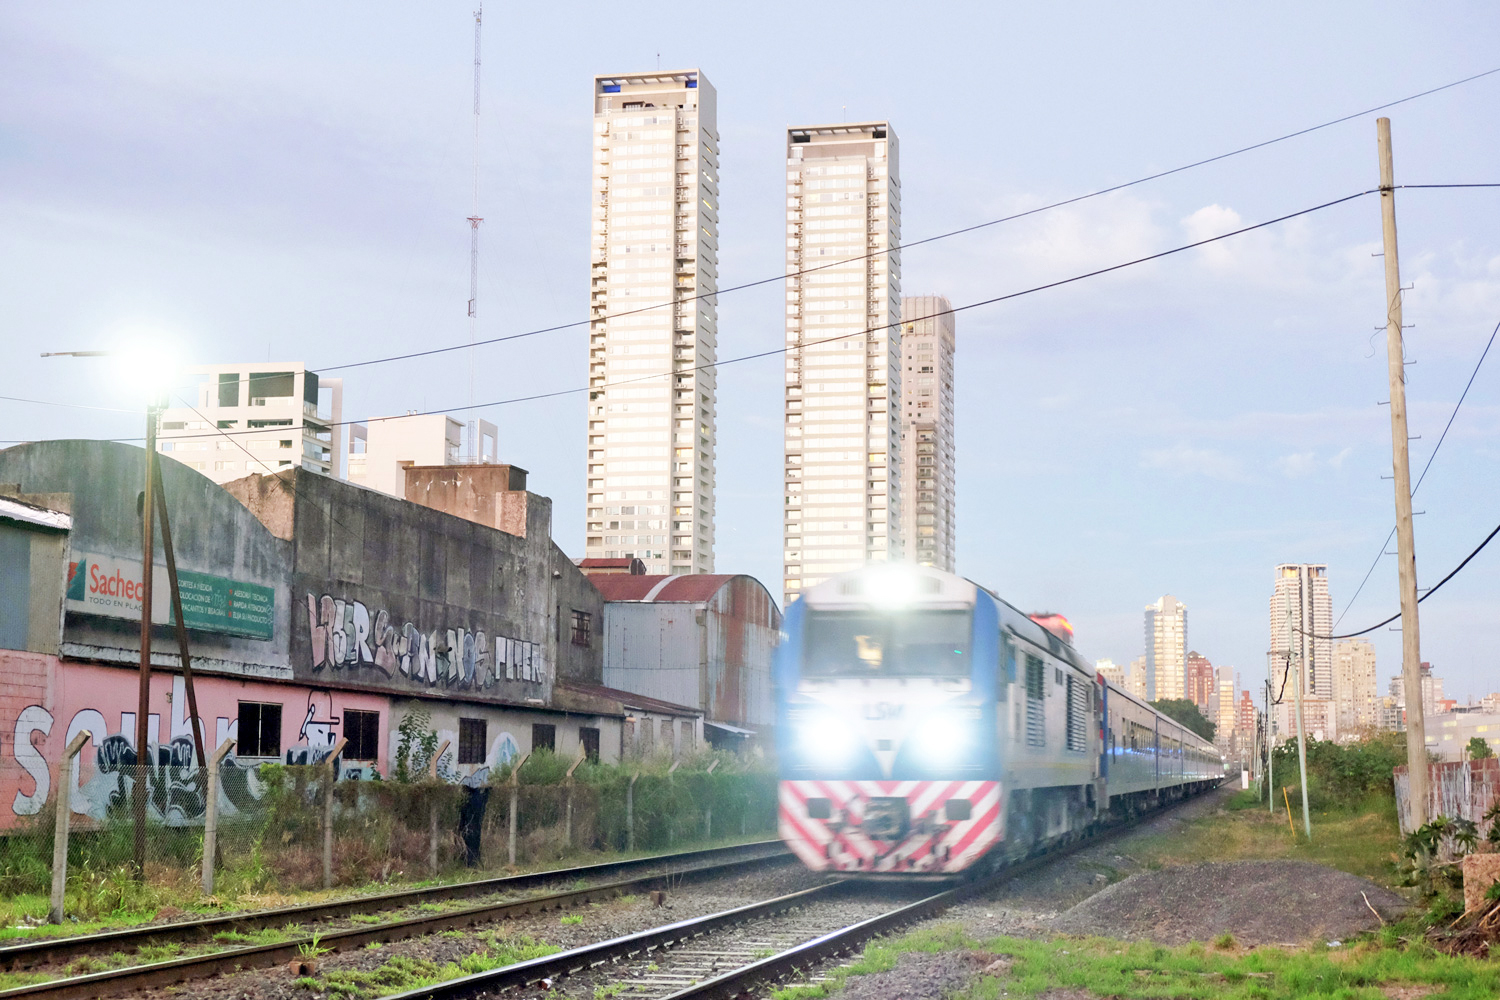 train-in-the-twilight-palermo-buenos-aires-argentina.jpg